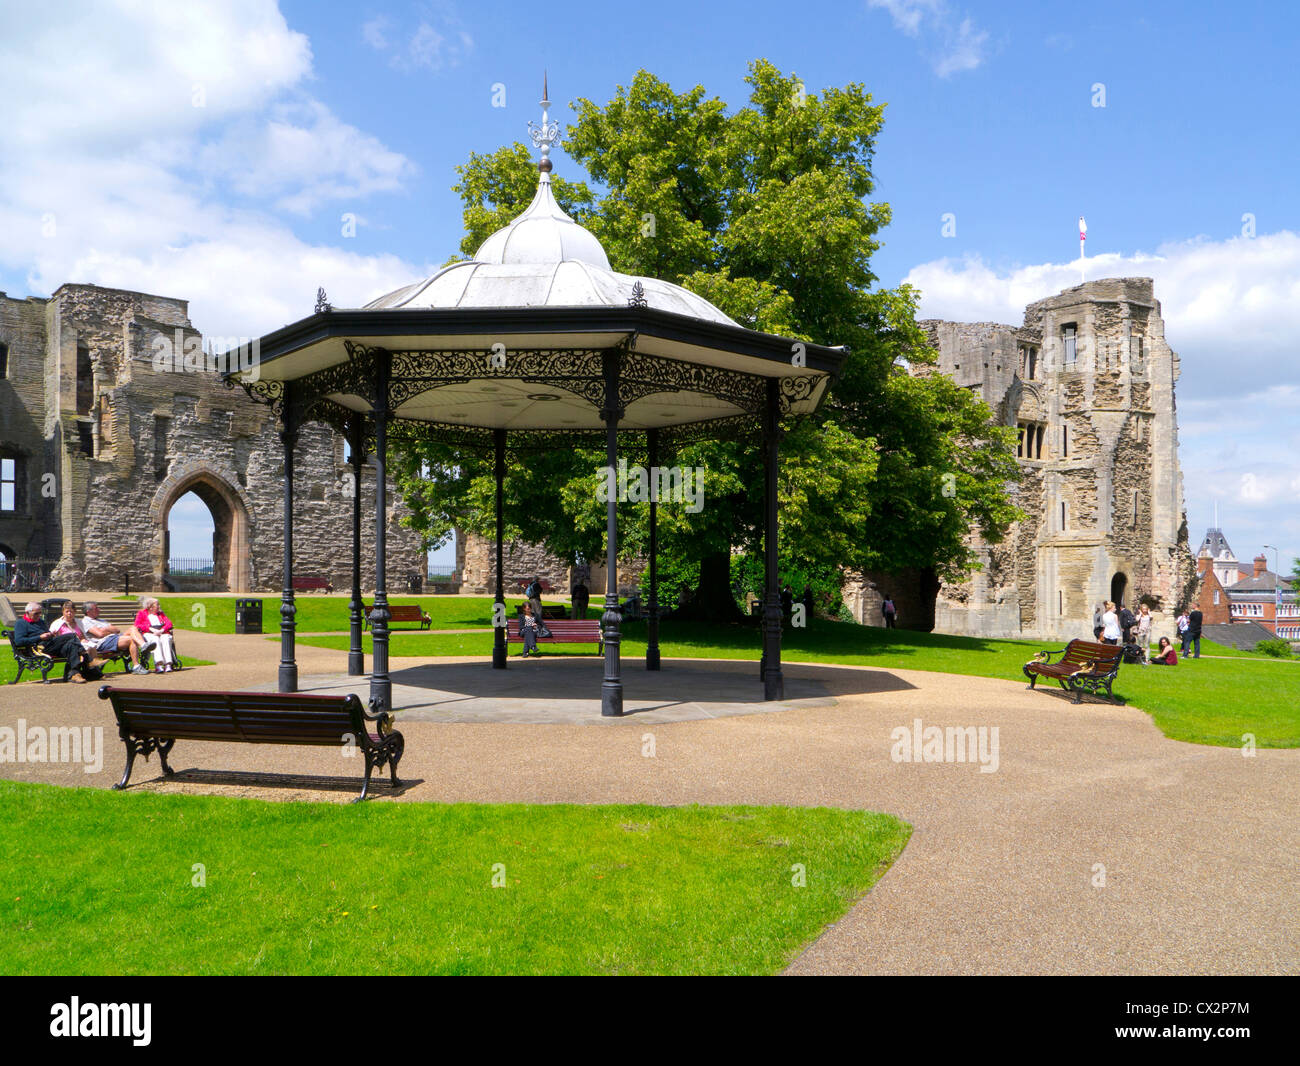 Newark Castle grounds and bandstand, Newark, Nottinghamshire - Stock Image